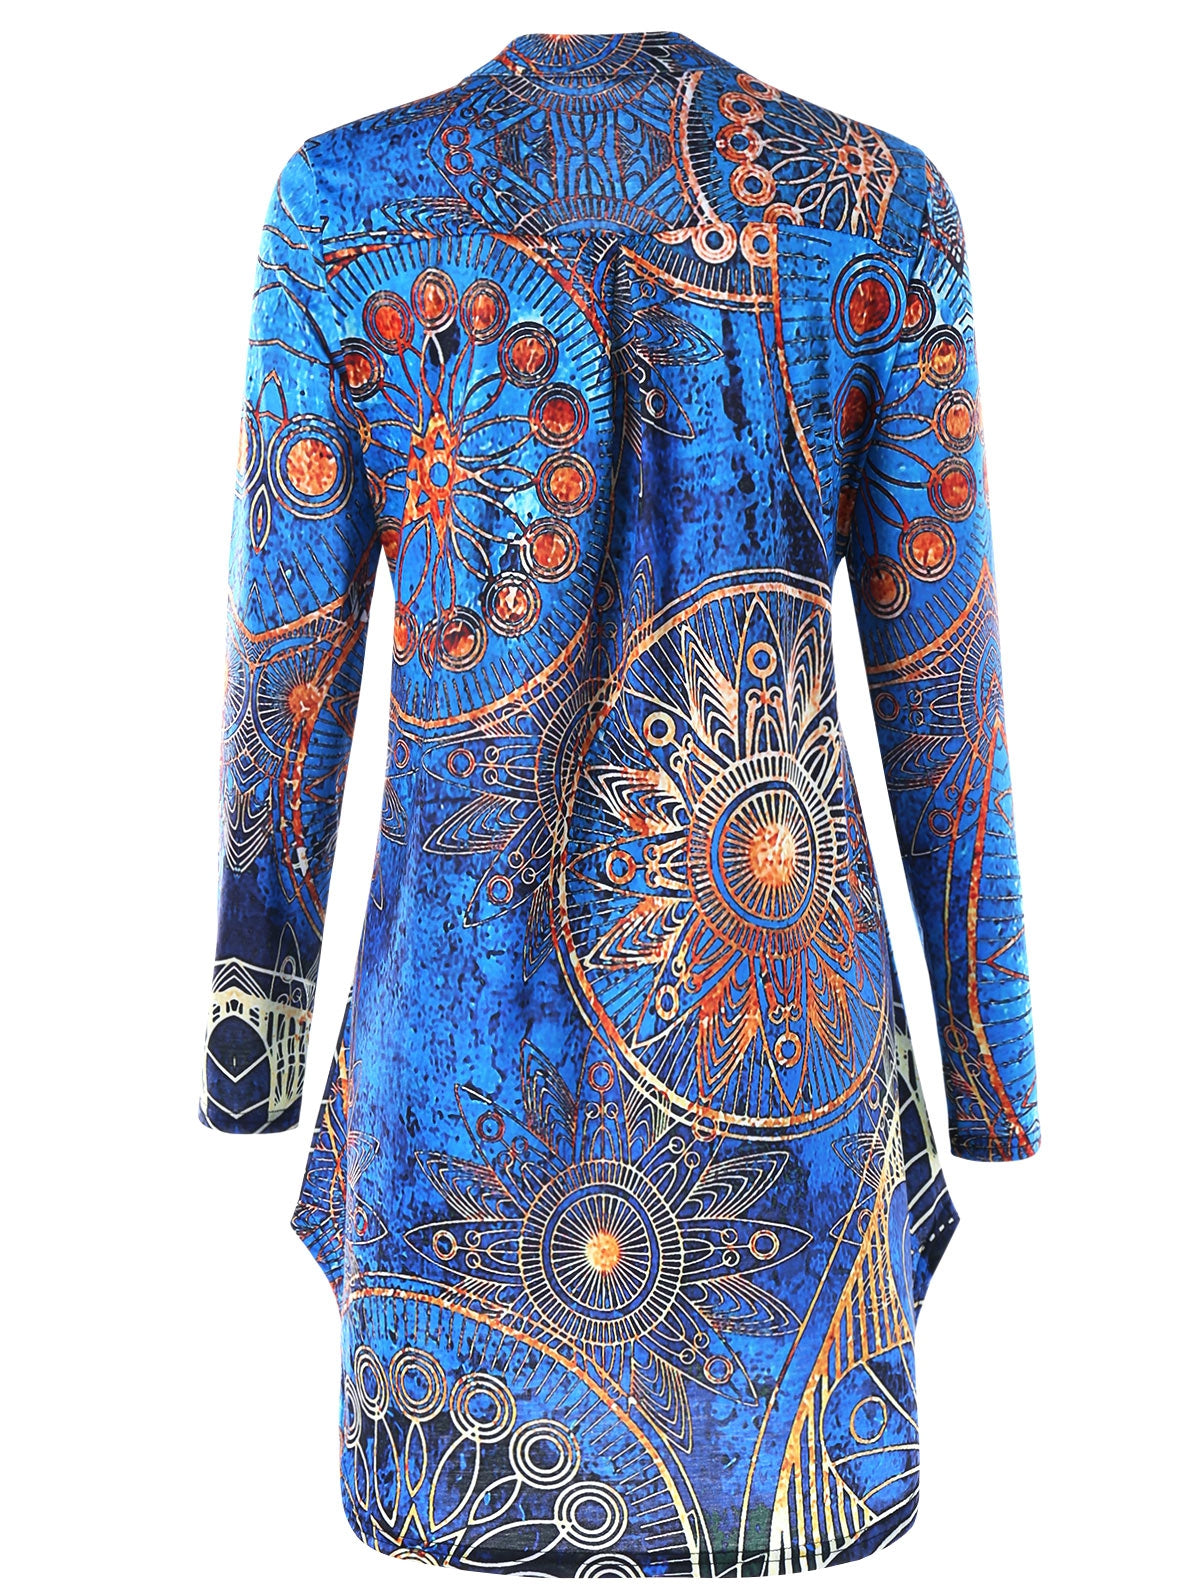 89fc21103fe0e Plus Size Tribal Printed Tunic T-shirt – Queen Size Zone